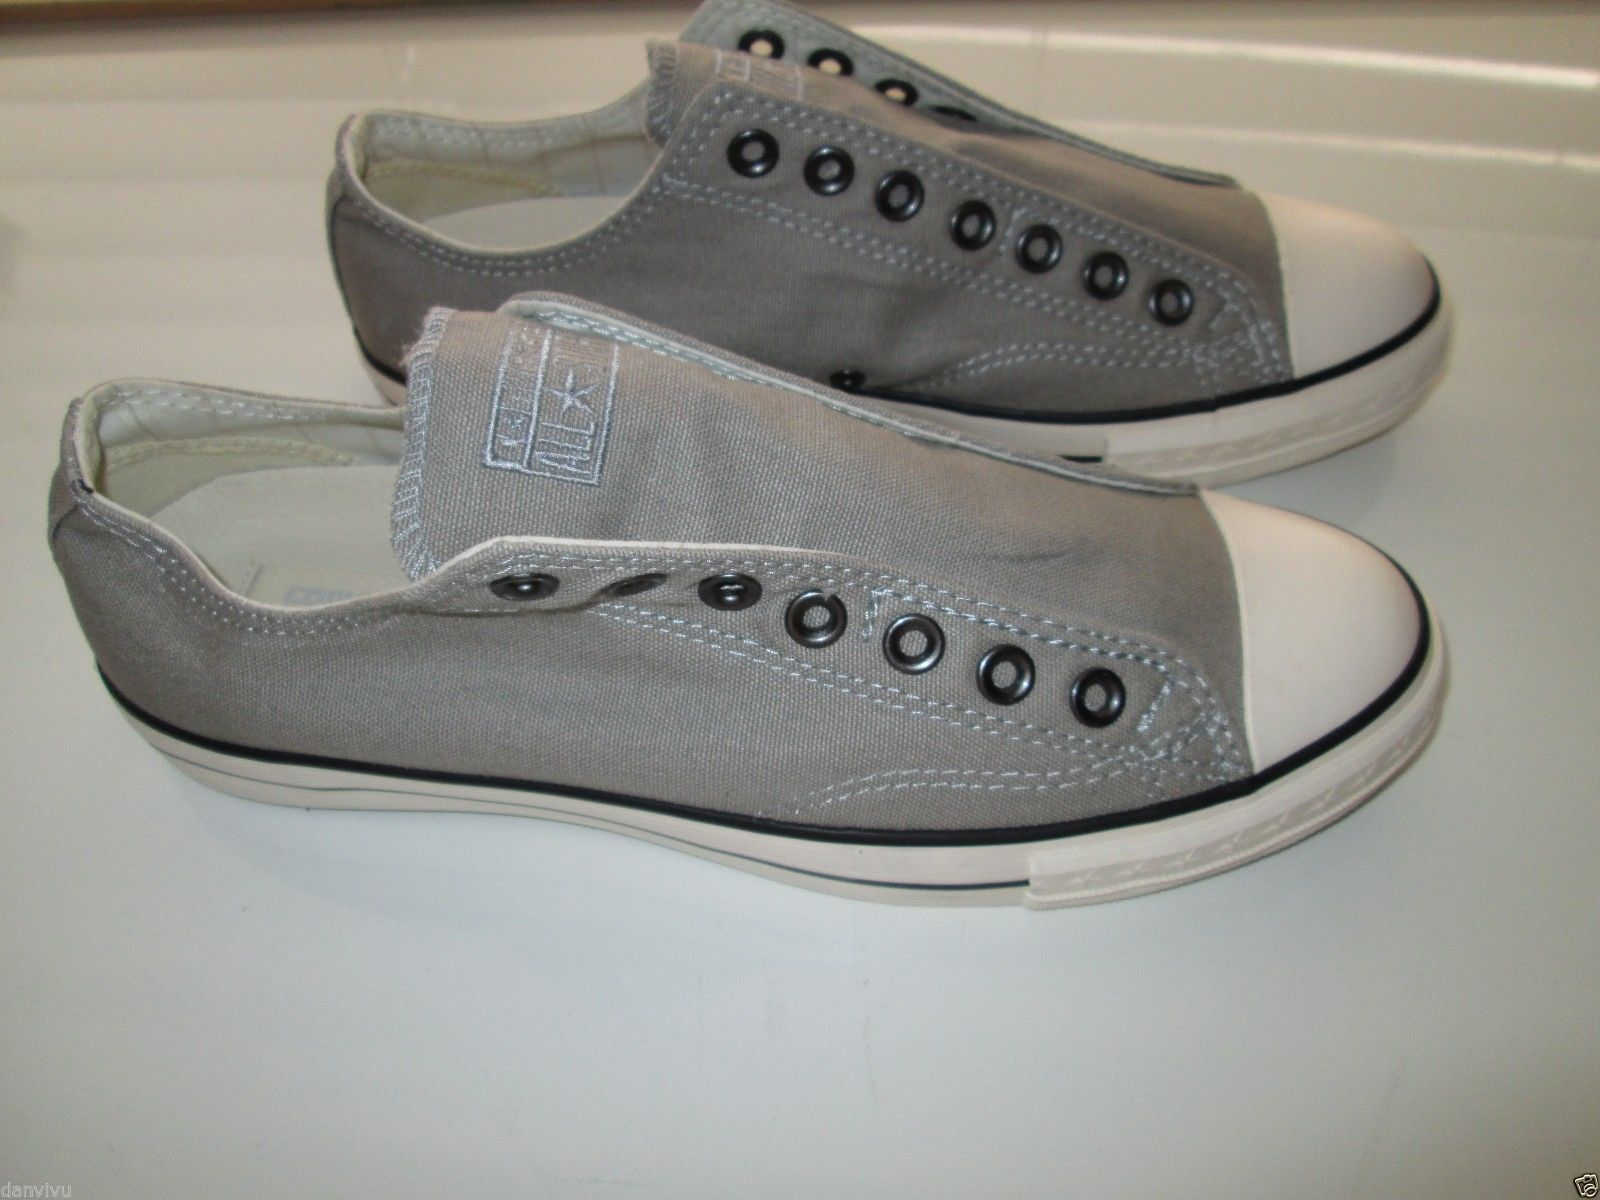 03e953e7356 S l1600. S l1600. Previous. Converse by John Varvatos All Star Burnished  Canvas Sneaker Gray 8.5M MEN 9.5M W